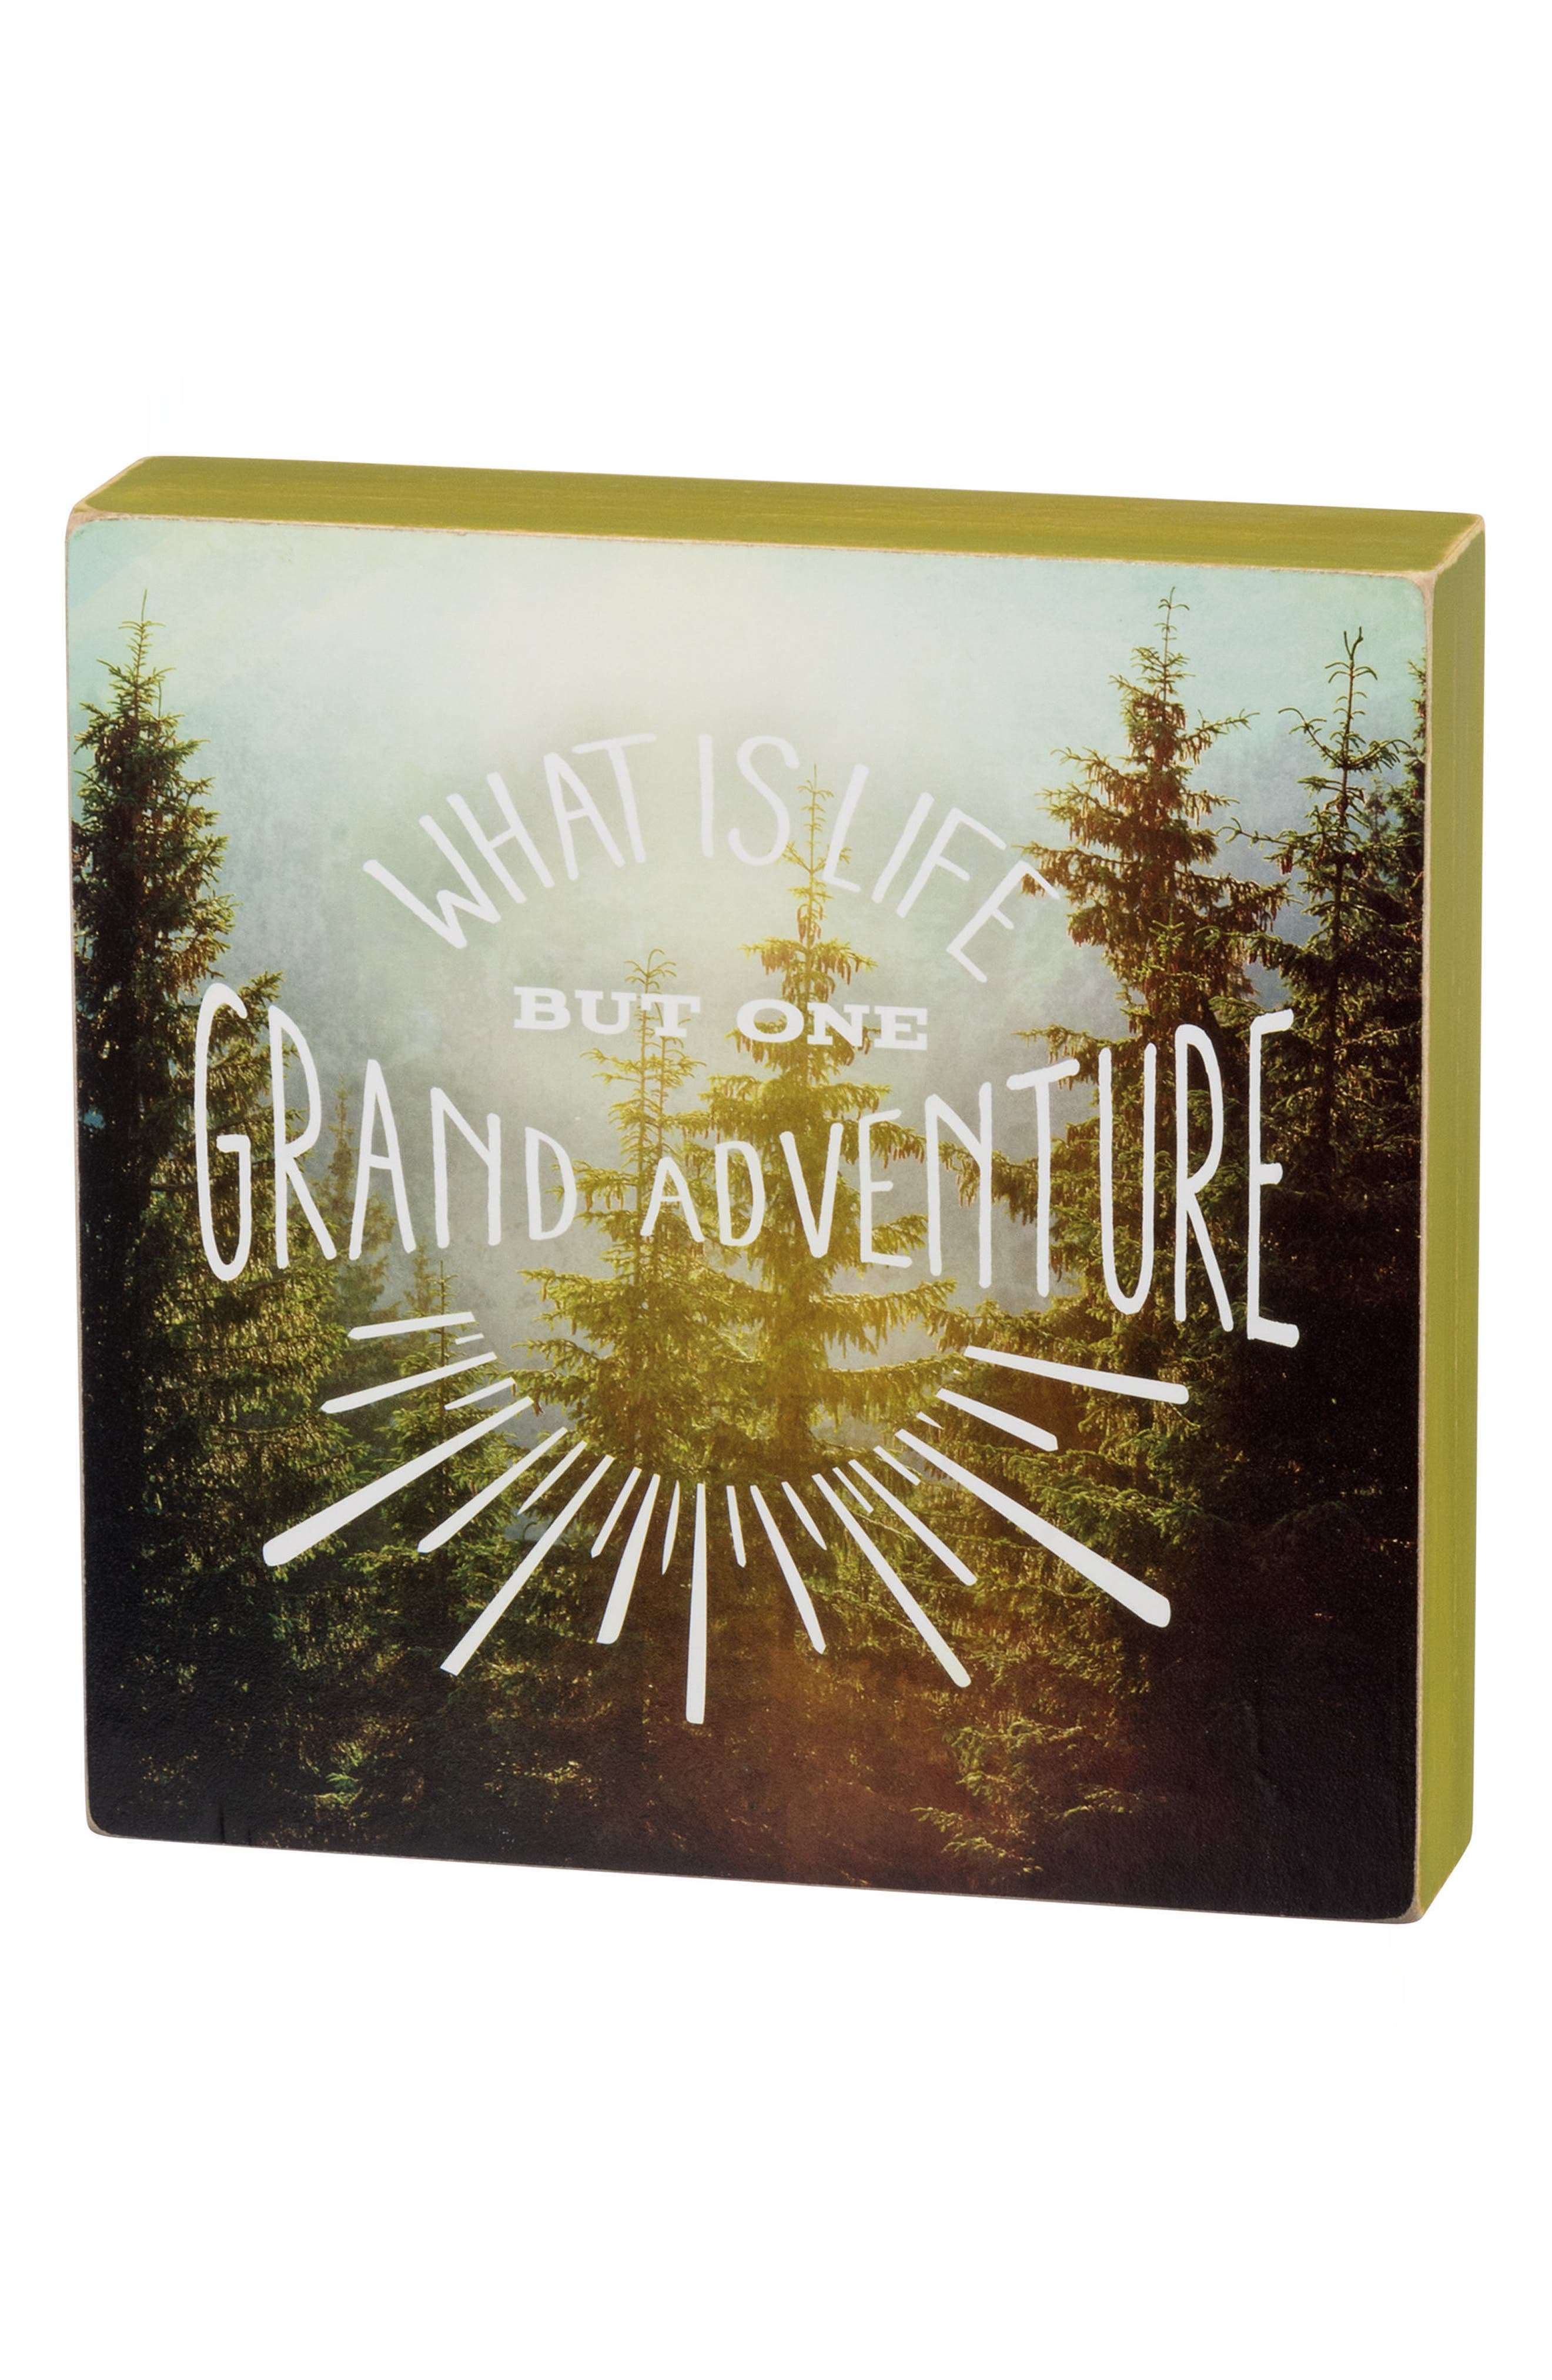 Primitives by Kathy Grand Adventure Box Sign